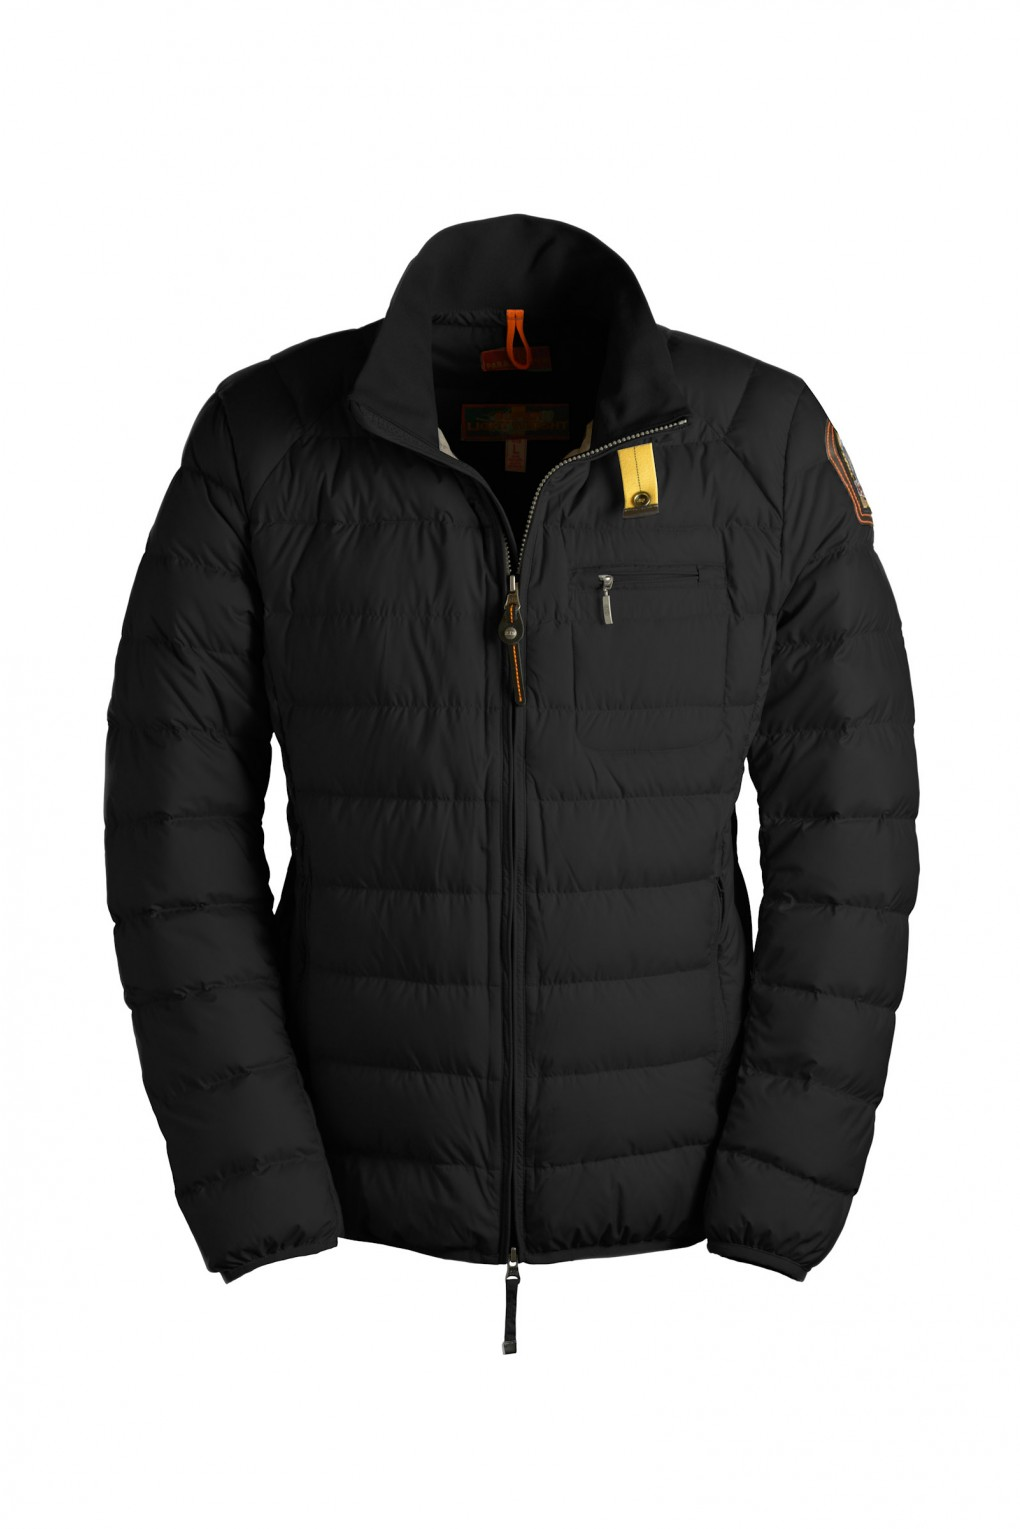 parajumpers UGO man outerwear Black